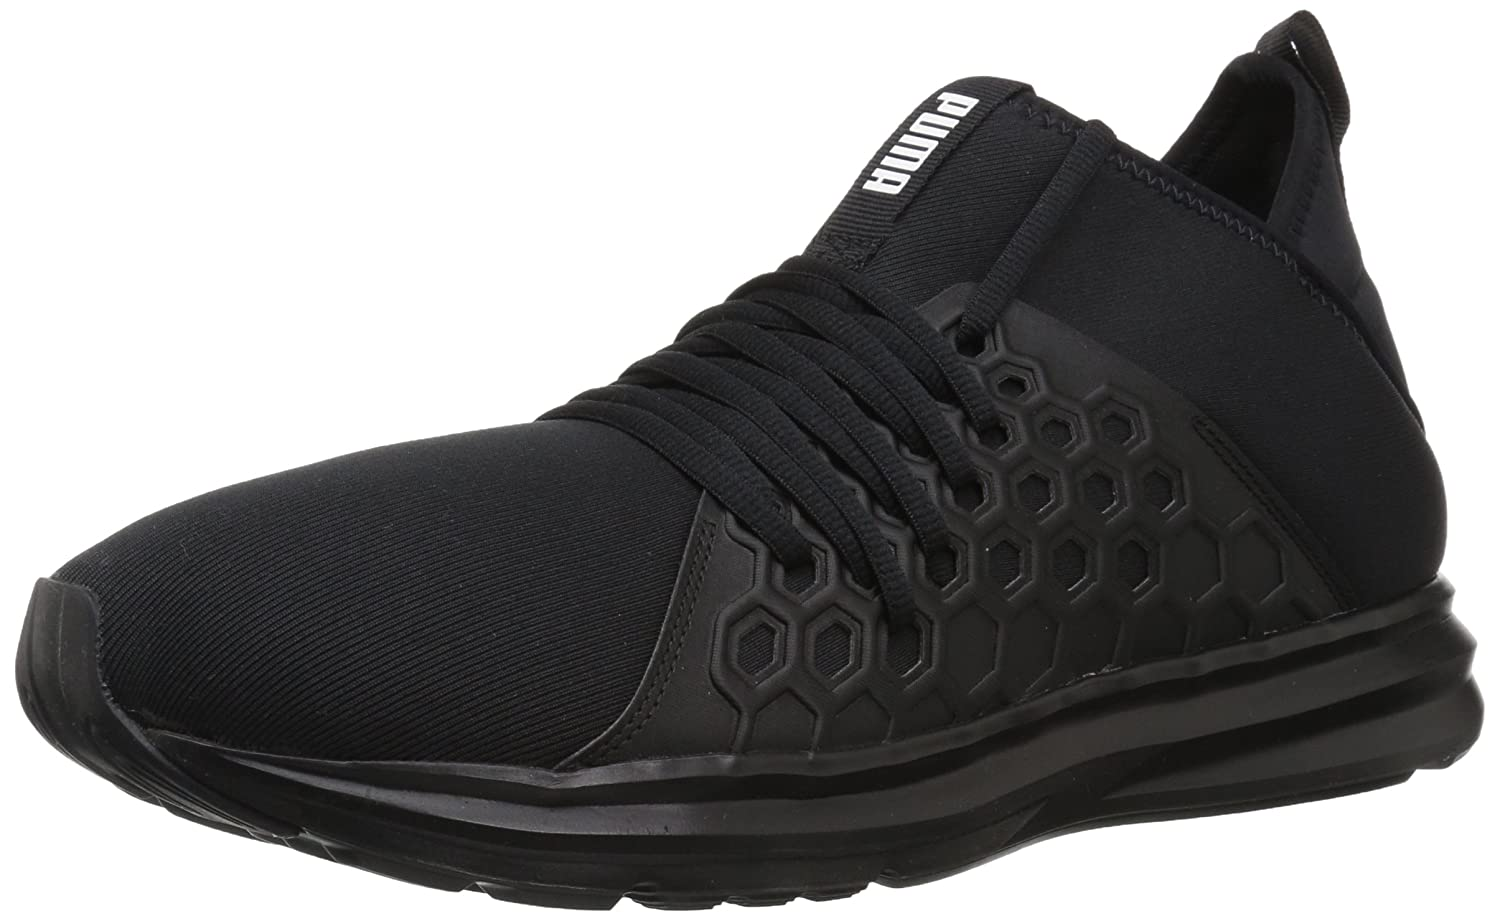 PUMA Rubber Enzo Nf Mid Sneaker in Black for Men Lyst